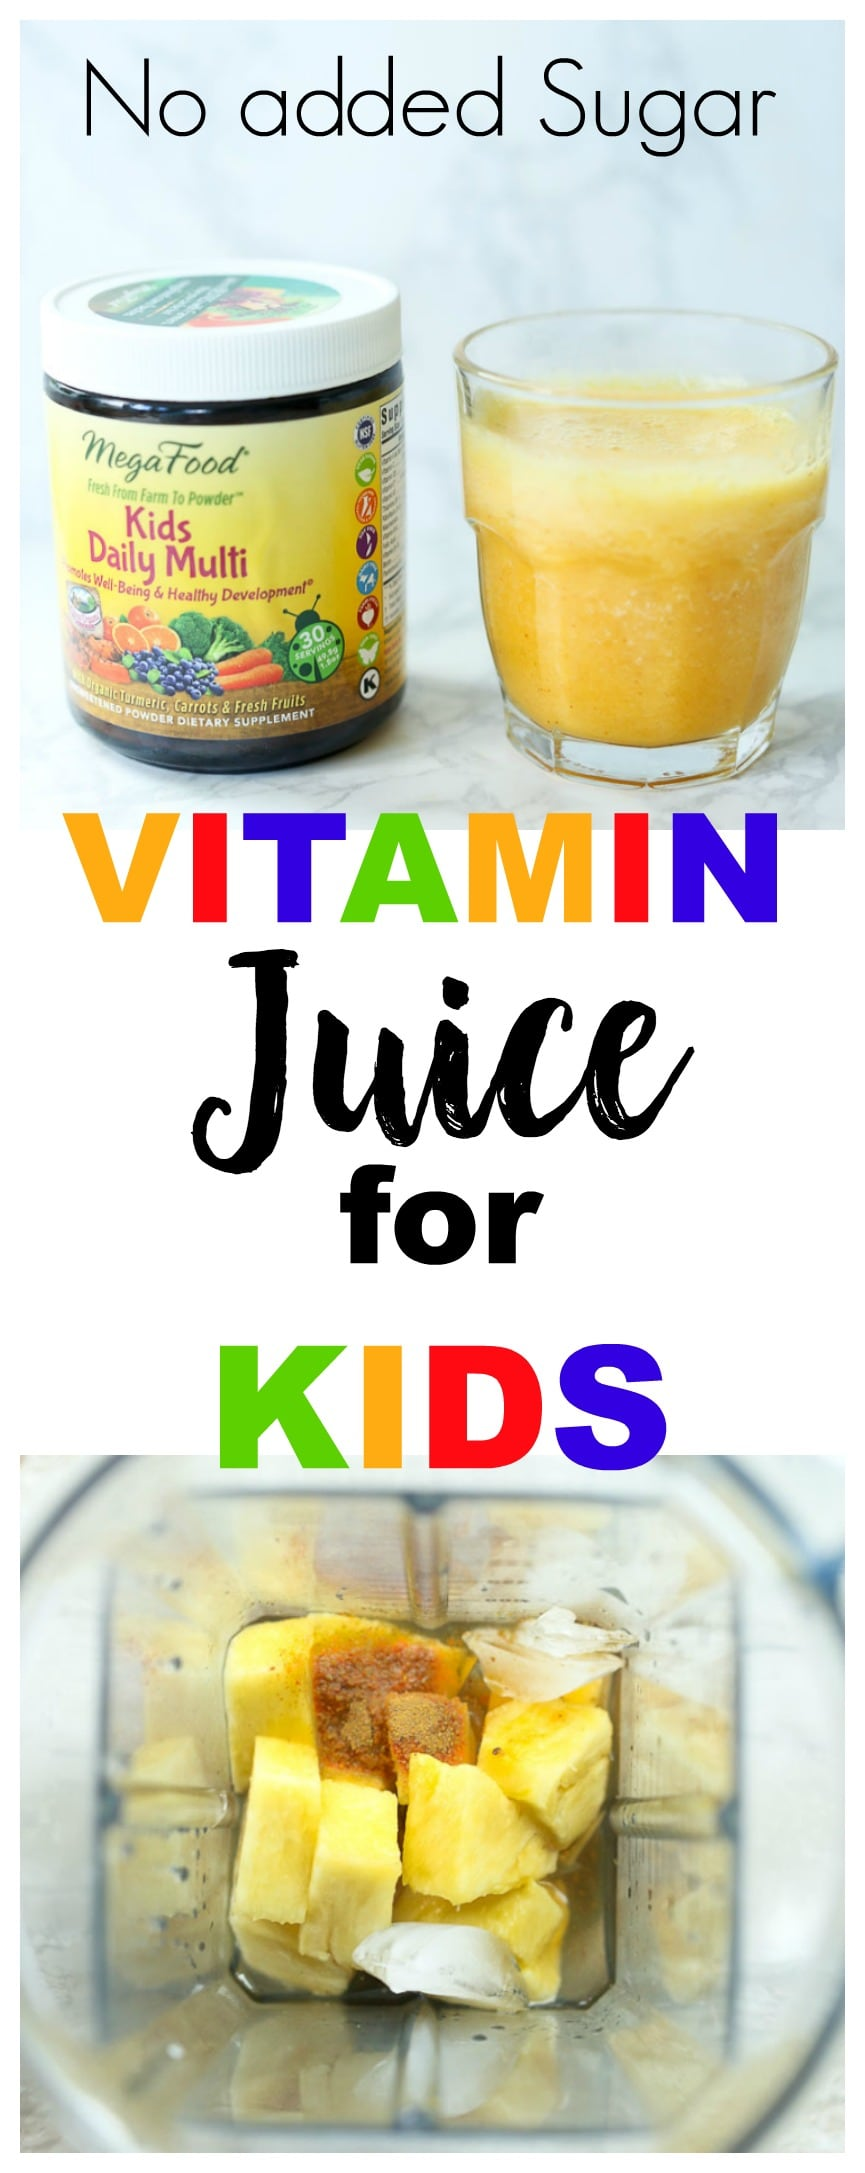 MegaFood Kids Daily Multi Review Vitamin Juice for Kids